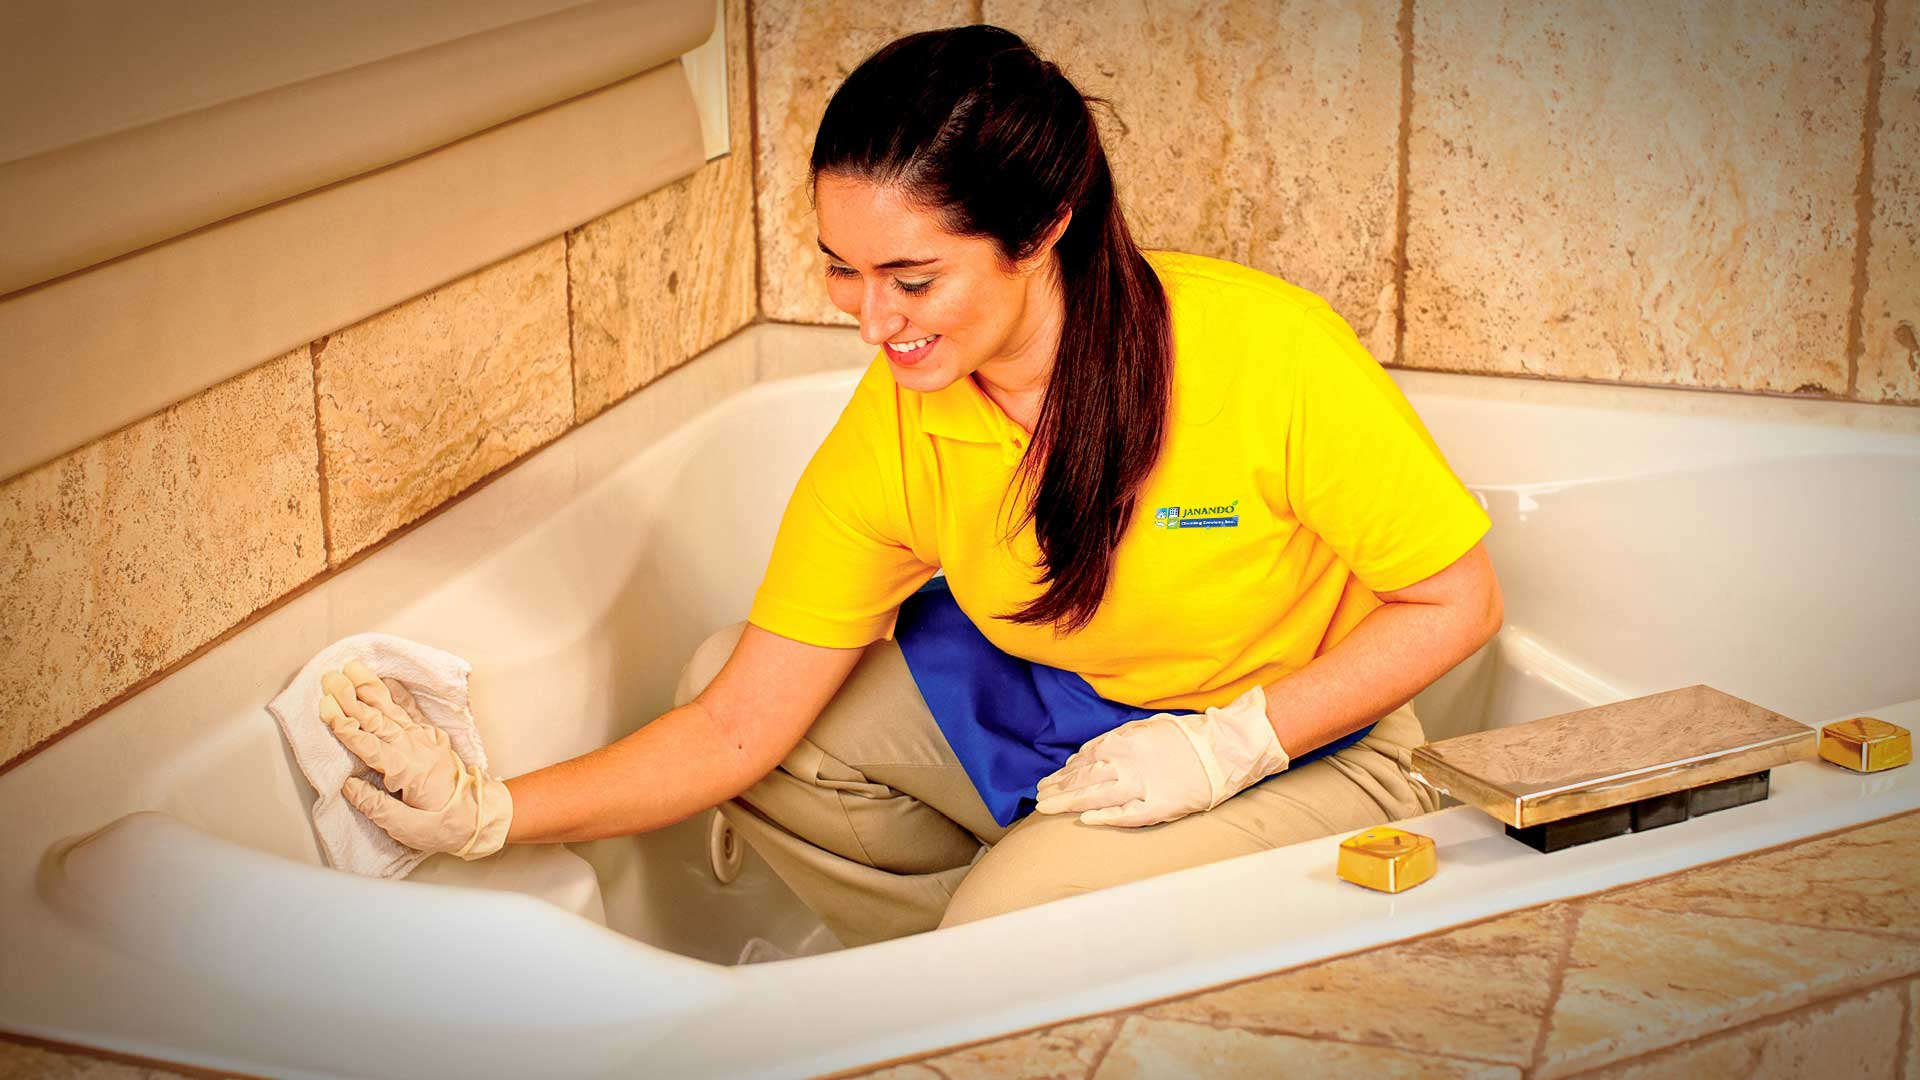 Commercial Kitchen Cleaning Services Tampa